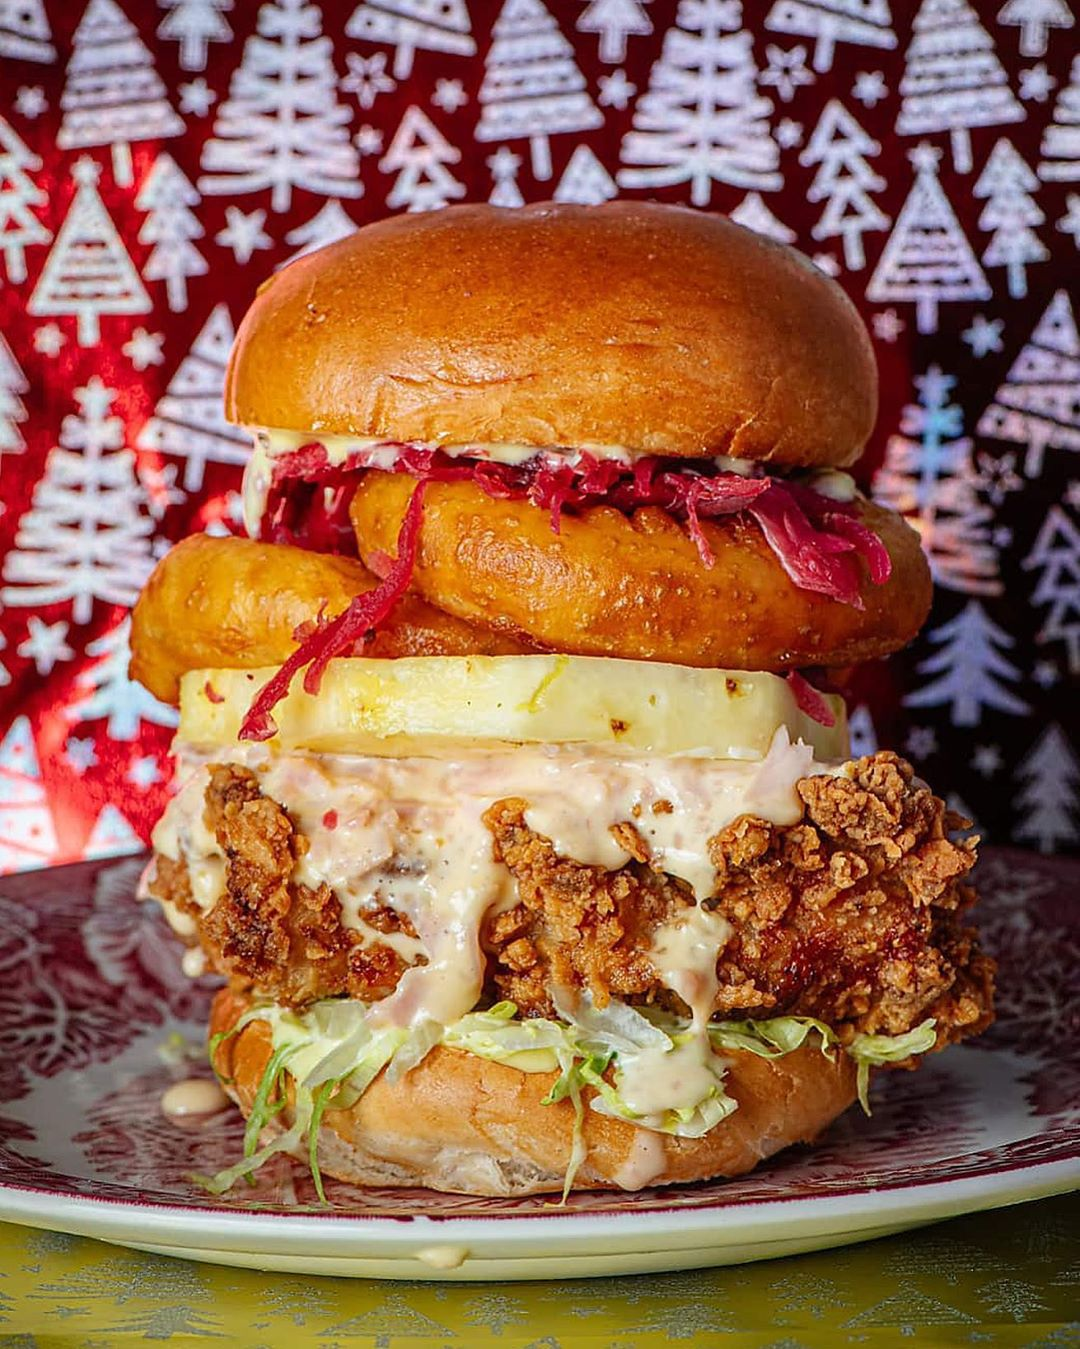 Chick 'n' Sours' 70s Christmas effort is one of this year's most extra sandwiches in London